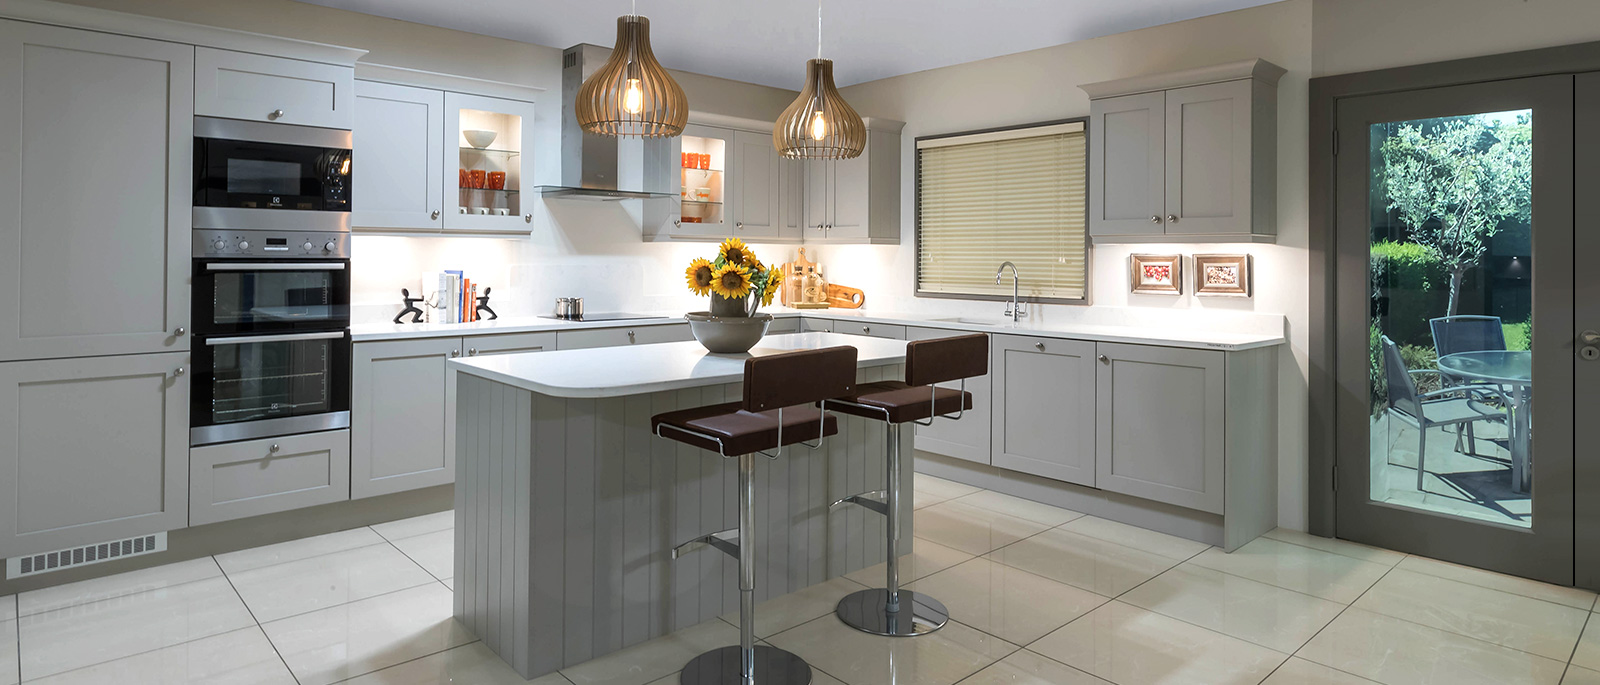 Nolan Kitchens, New Kitchens, Designer Kitchens, Contemporary Kitchens,  Kitchens Ireland, Kitchen Design, Fitted Kitchens